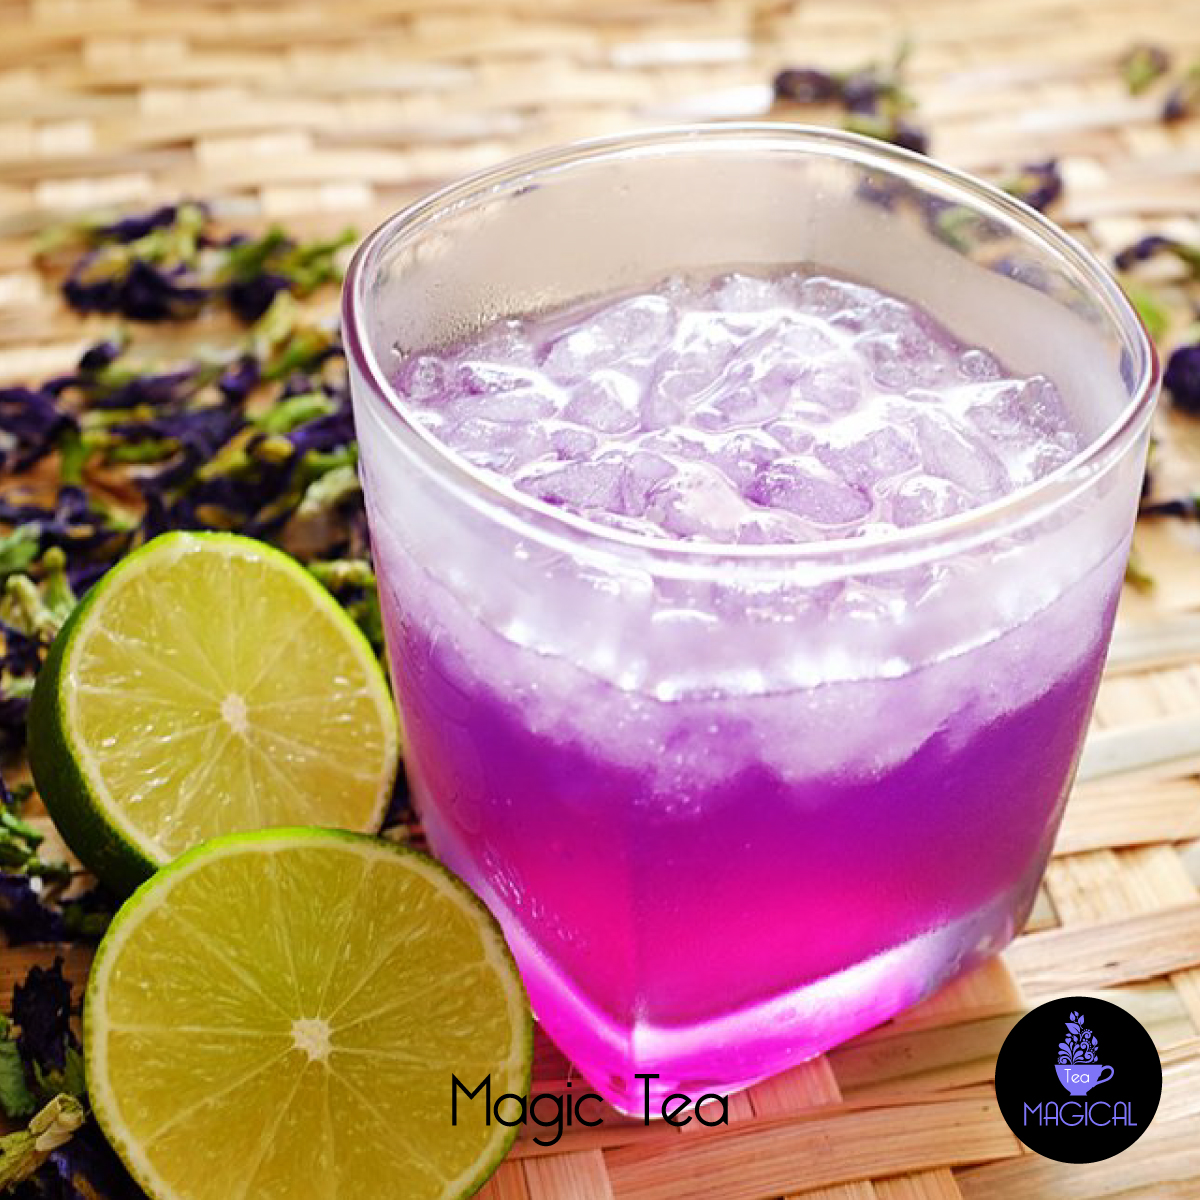 Magic Tea violet